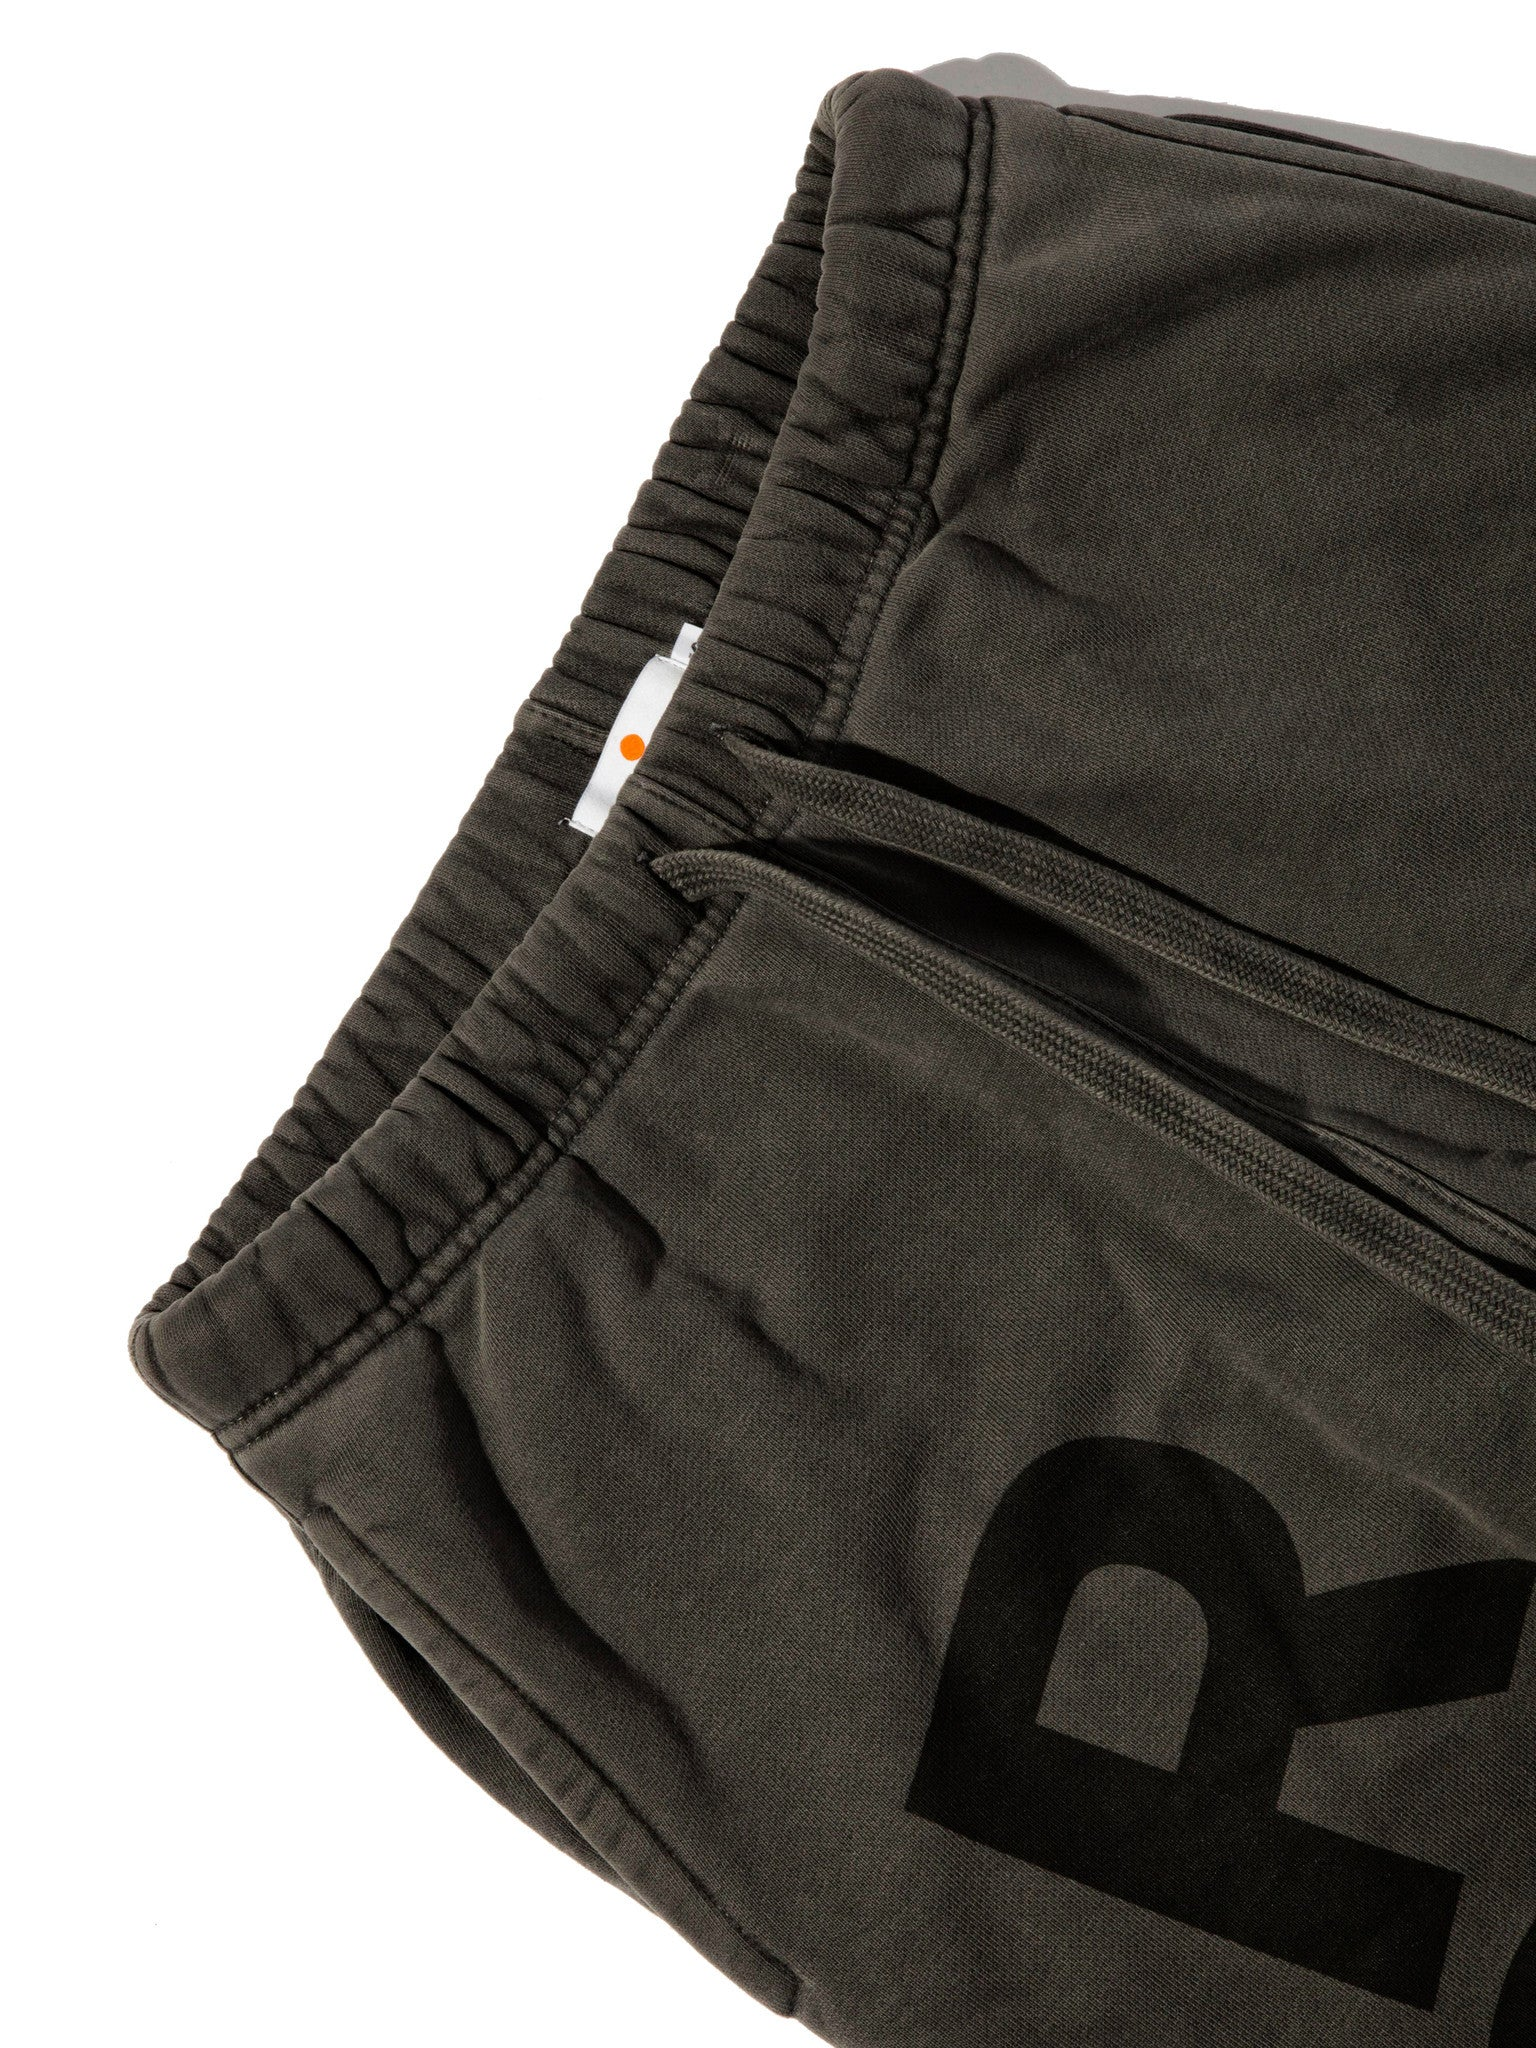 Orange Rumble Sweatpant 9